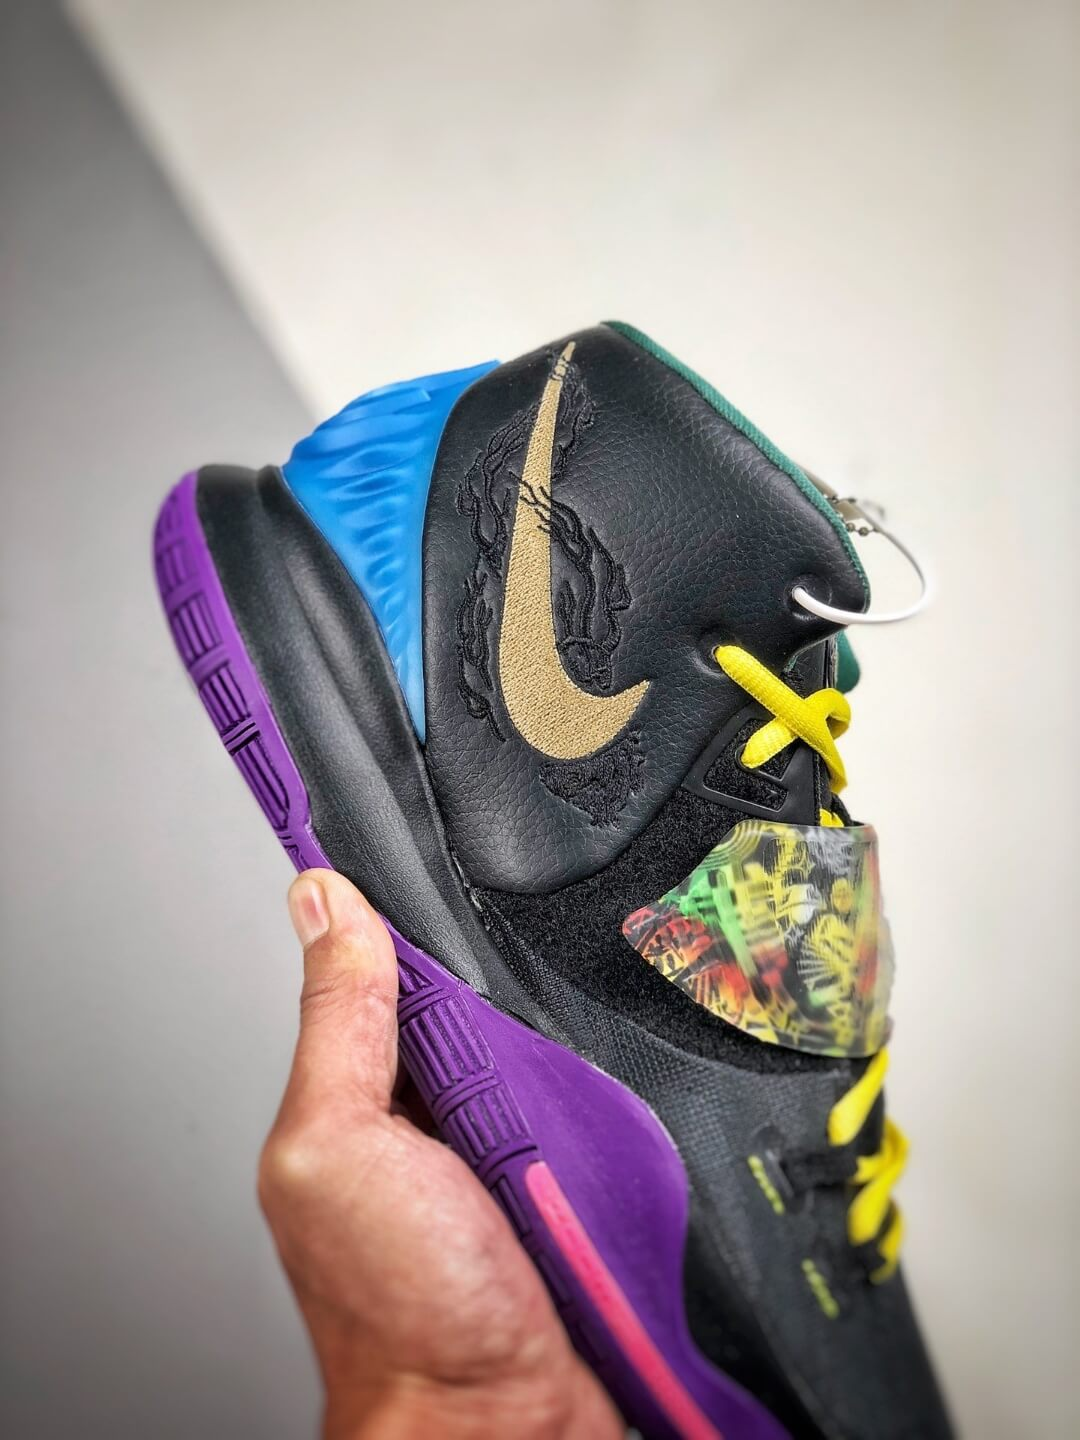 The Nike Kyrie 6 Chinese New Year Sneaker Multicolor Graphic Black Mesh Leather Upper Purple Outsole Replica Shoes 05